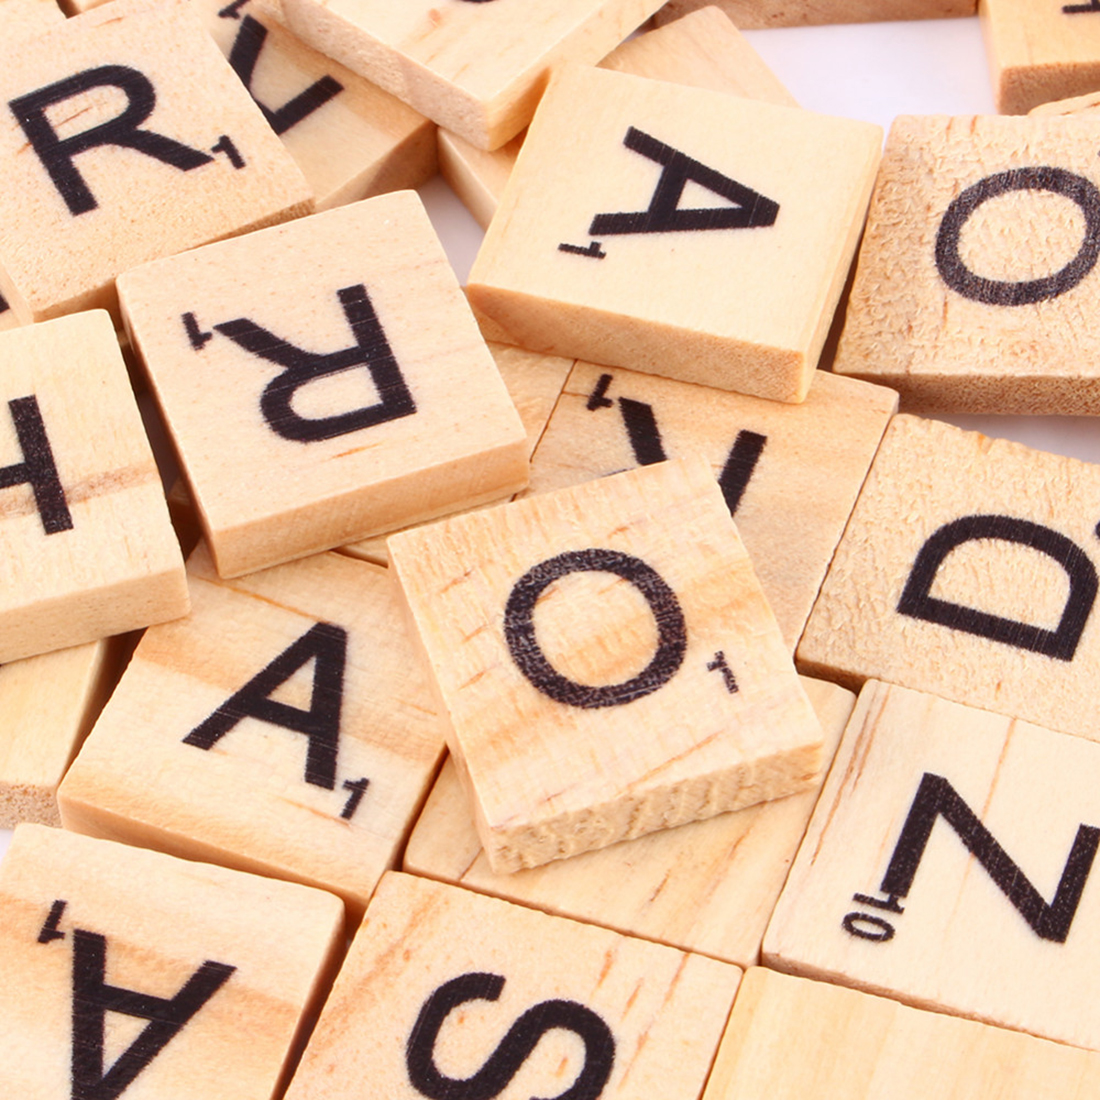 100Pcs Eco-friendly Wooden Scrabble Letters Scrapbooking Wedding Photo Props Decor Word  ...